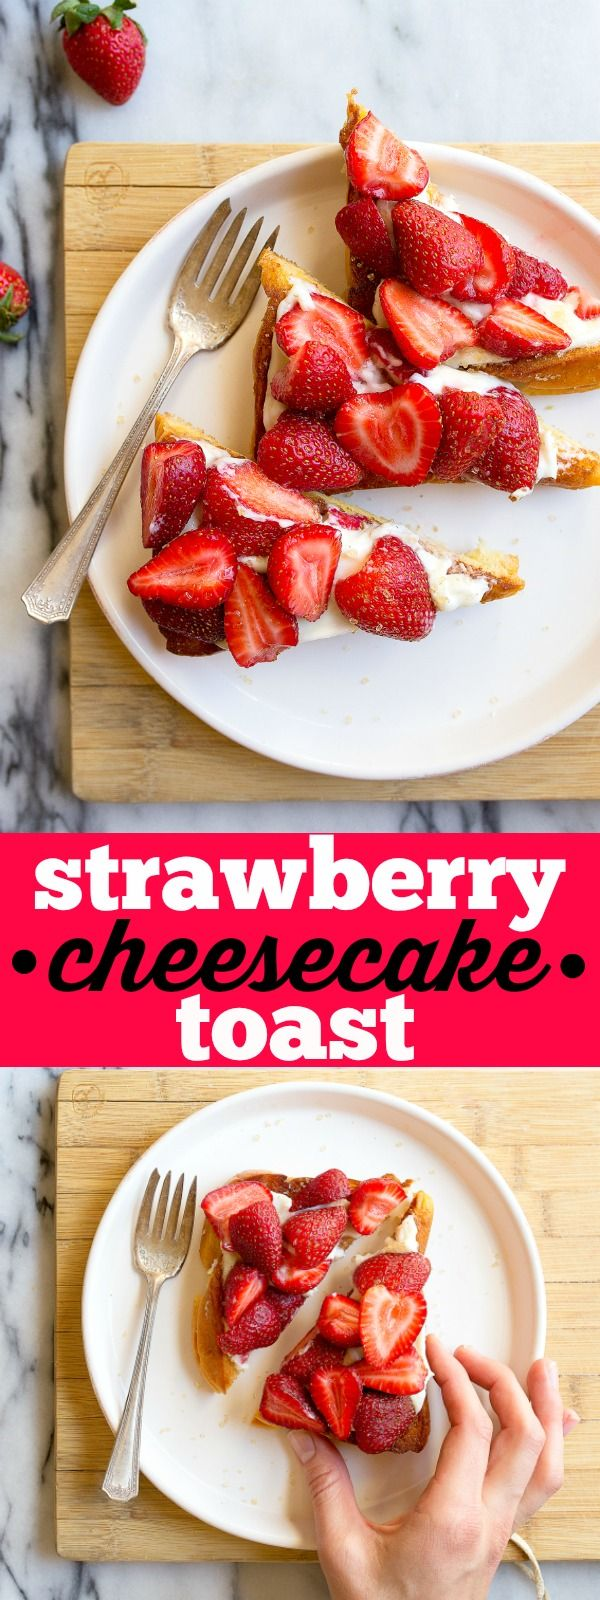 New fancy toast trend: cheesecake on toast! Strawberry cheesecake toast! Easy breakfast or fruity snack.